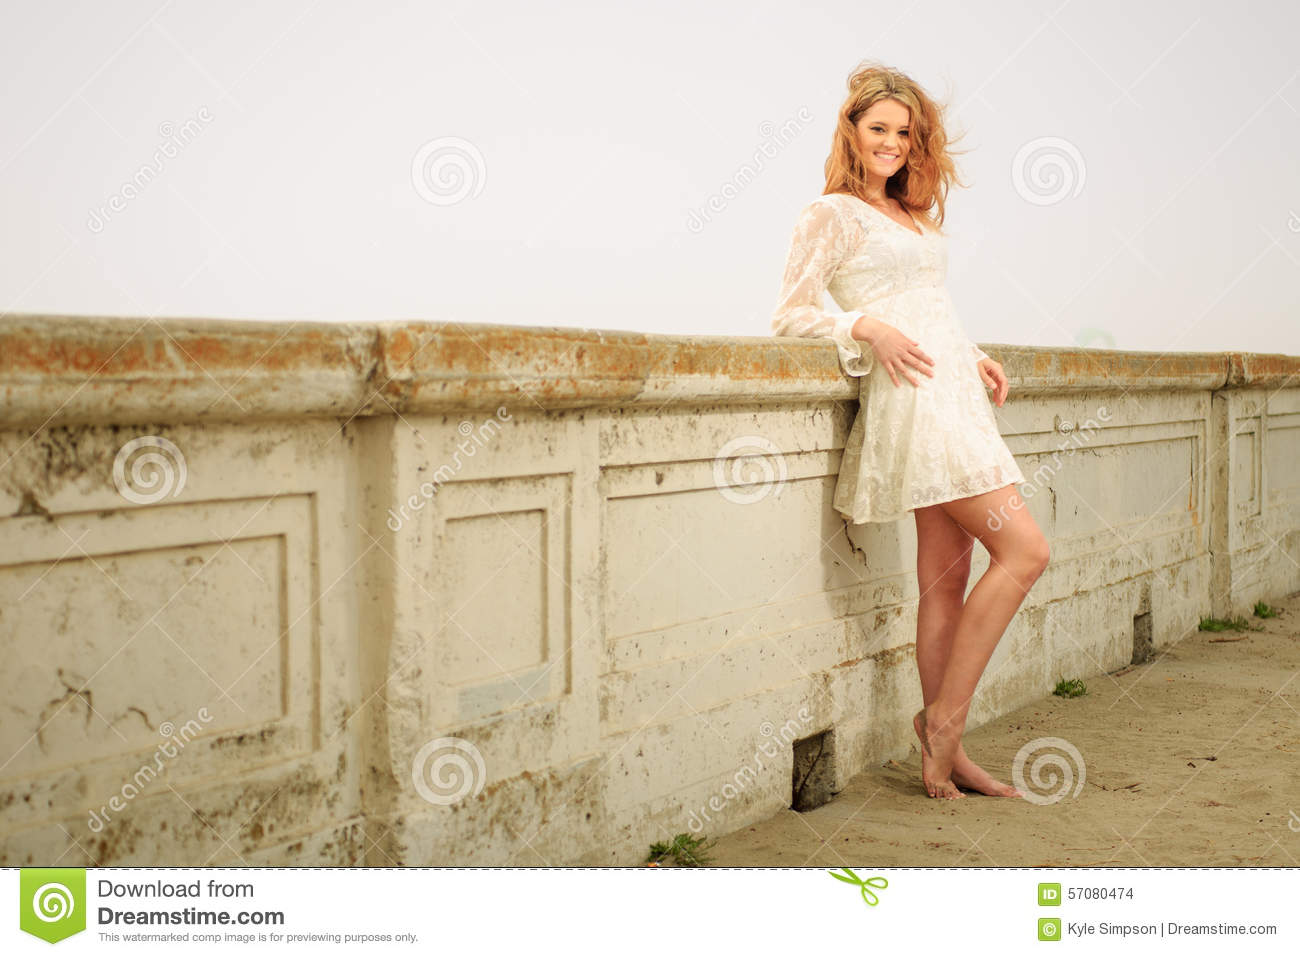 teen girl relaxing on a wall barefoot stock photo - image of